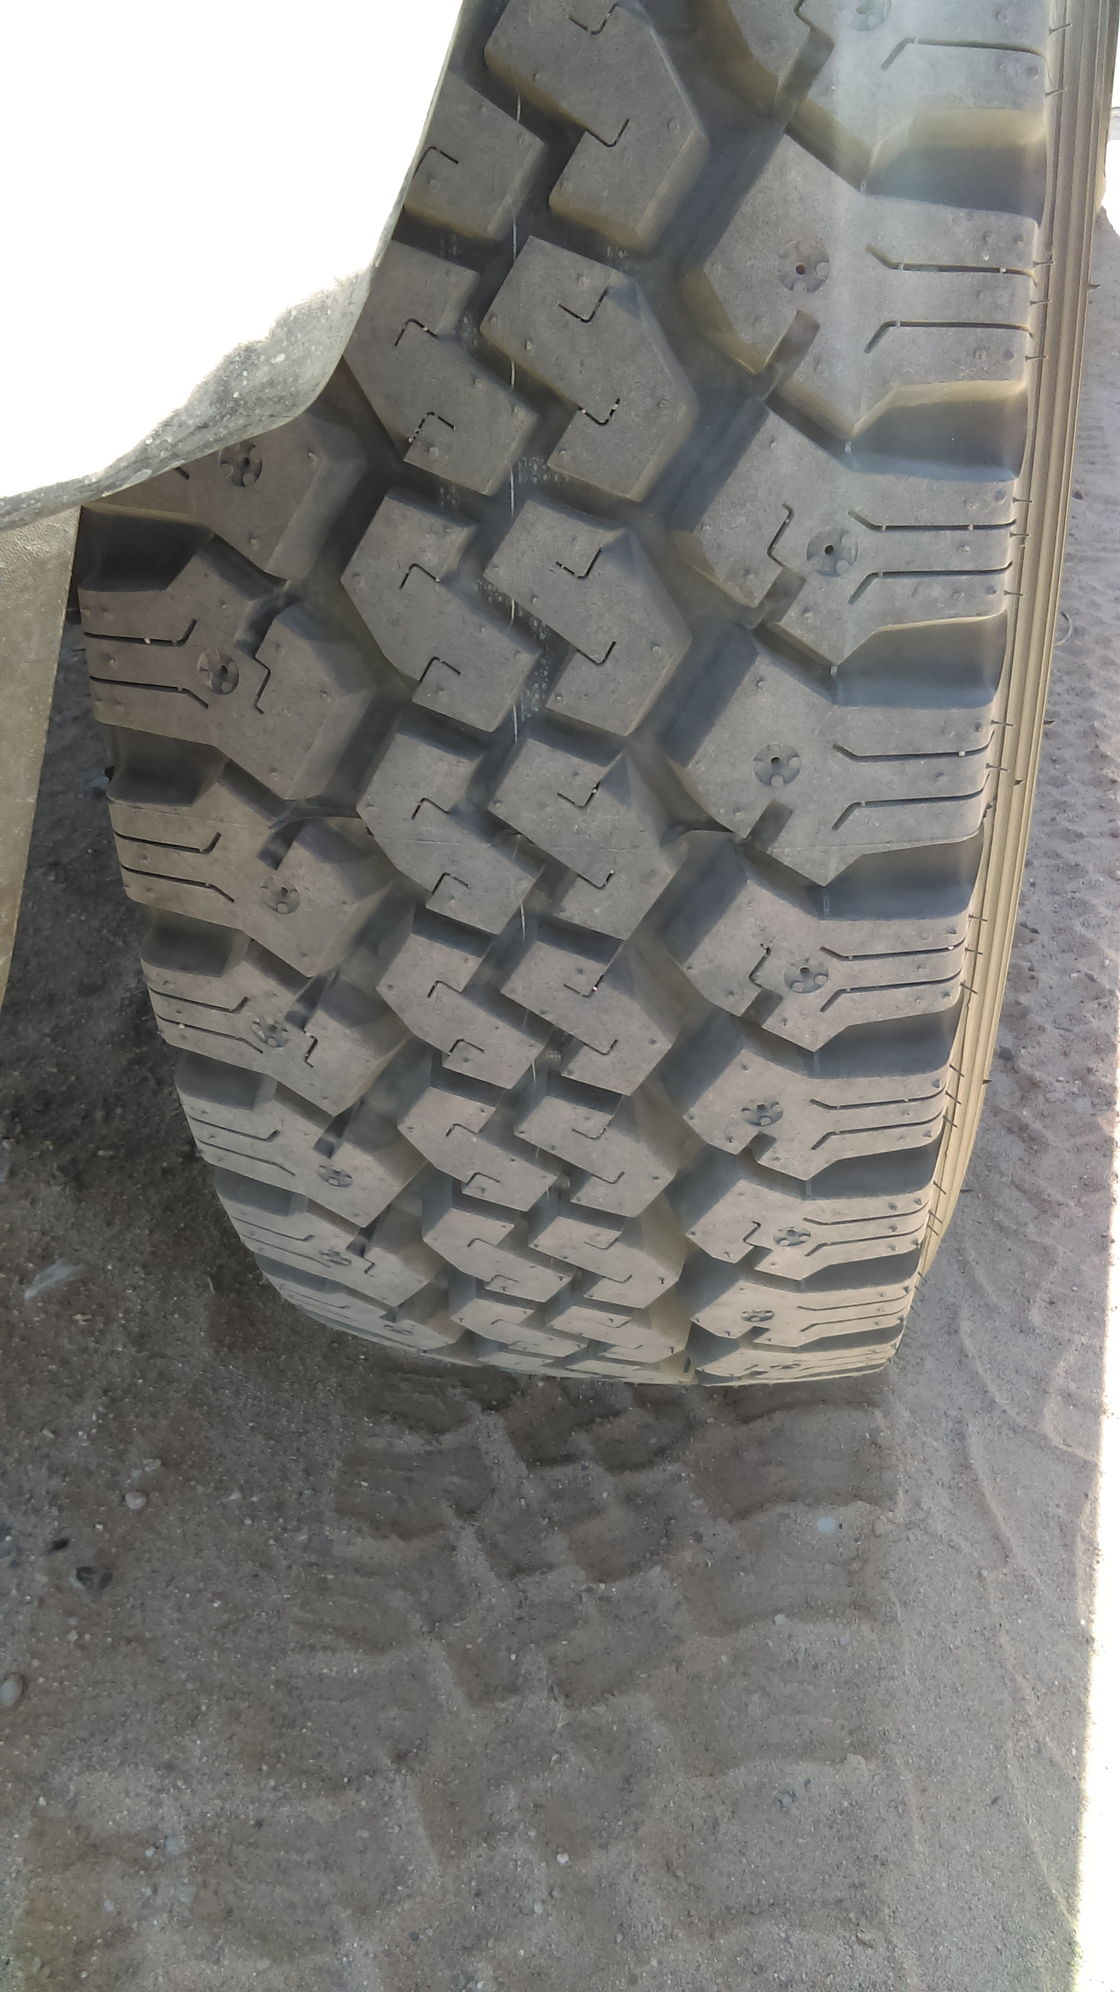 Toyo M 55 mercial grade tire review Ford Truck Enthusiasts Forums